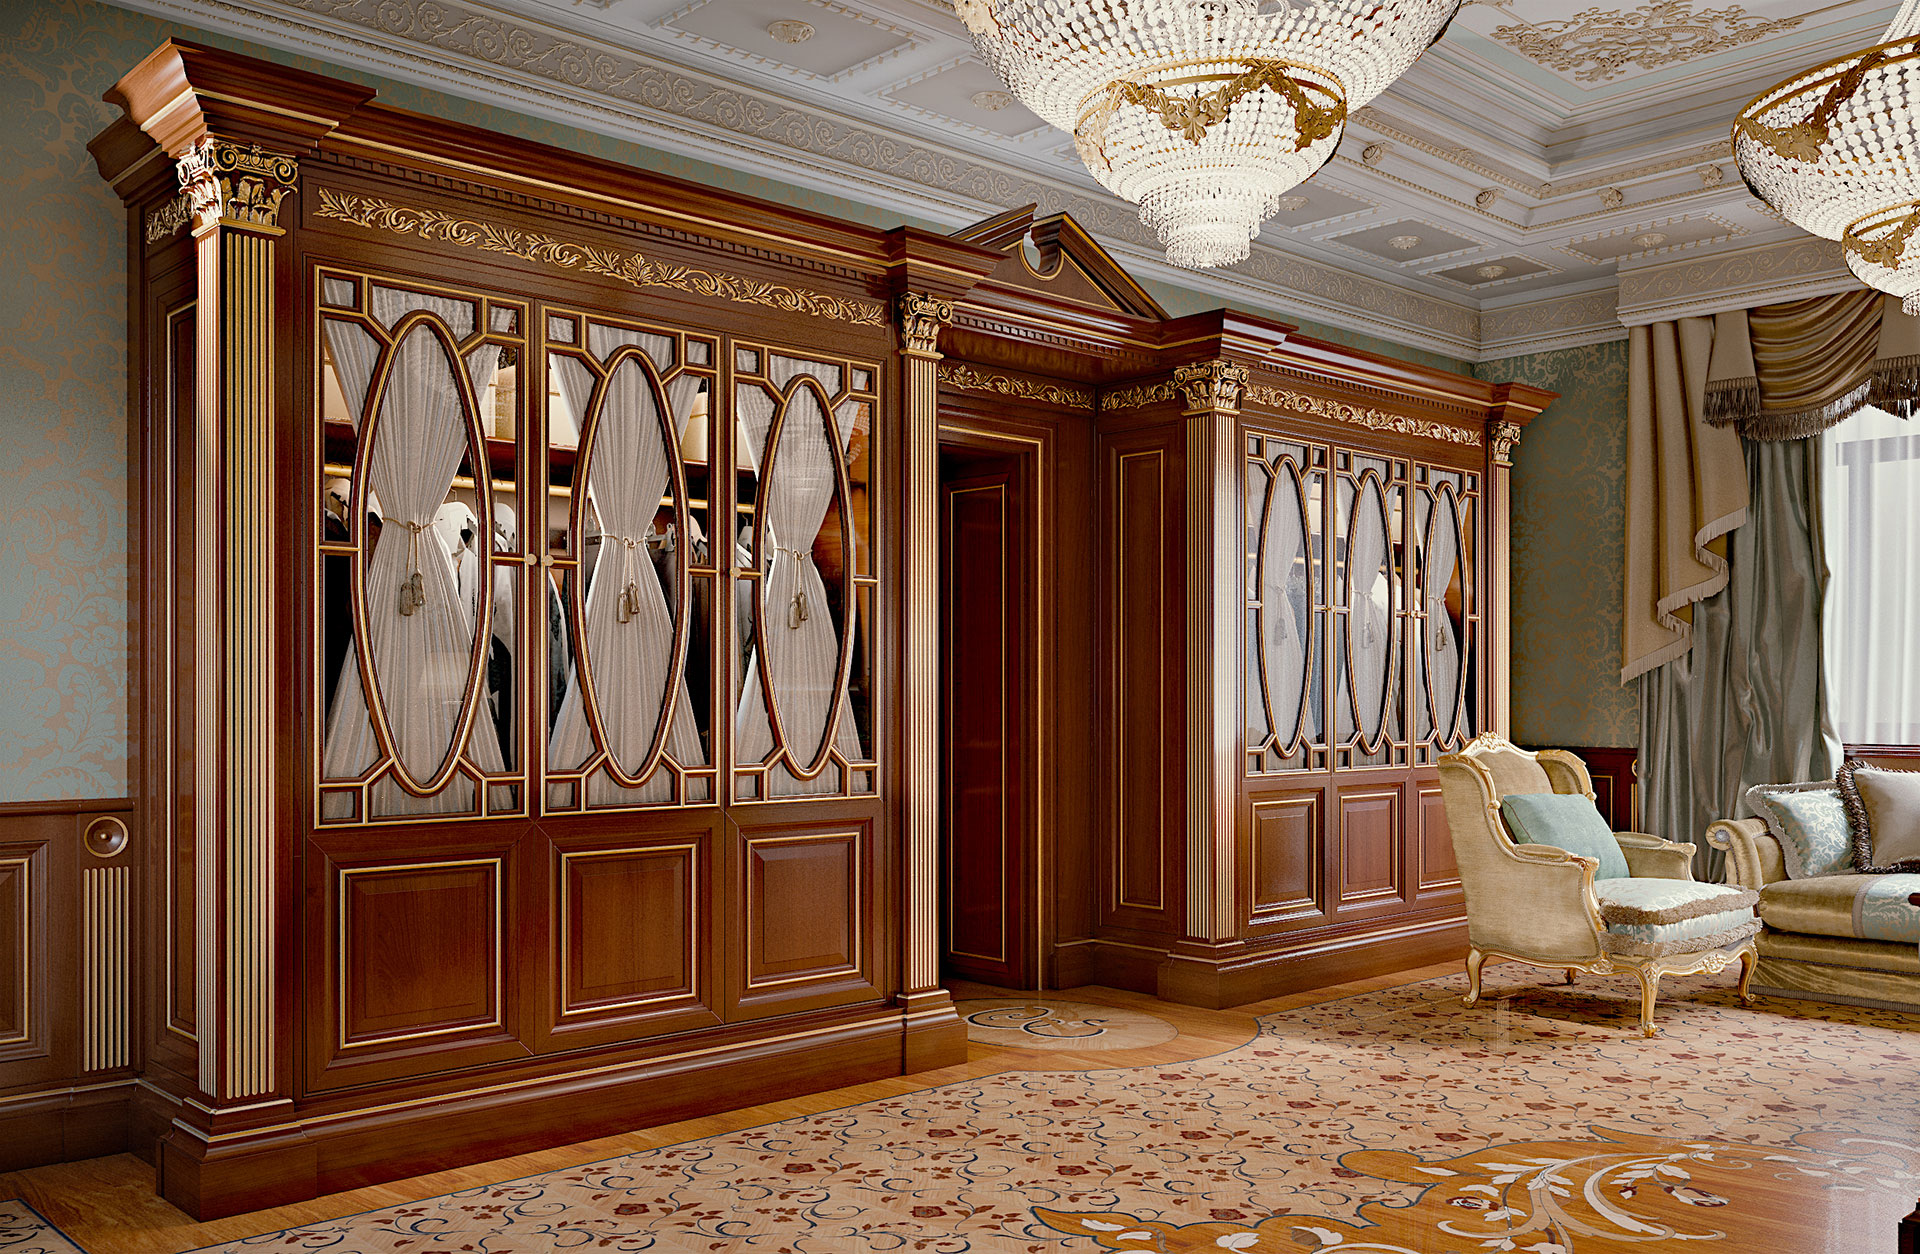 Faoma bedroom with luxury bespoke wardrobes